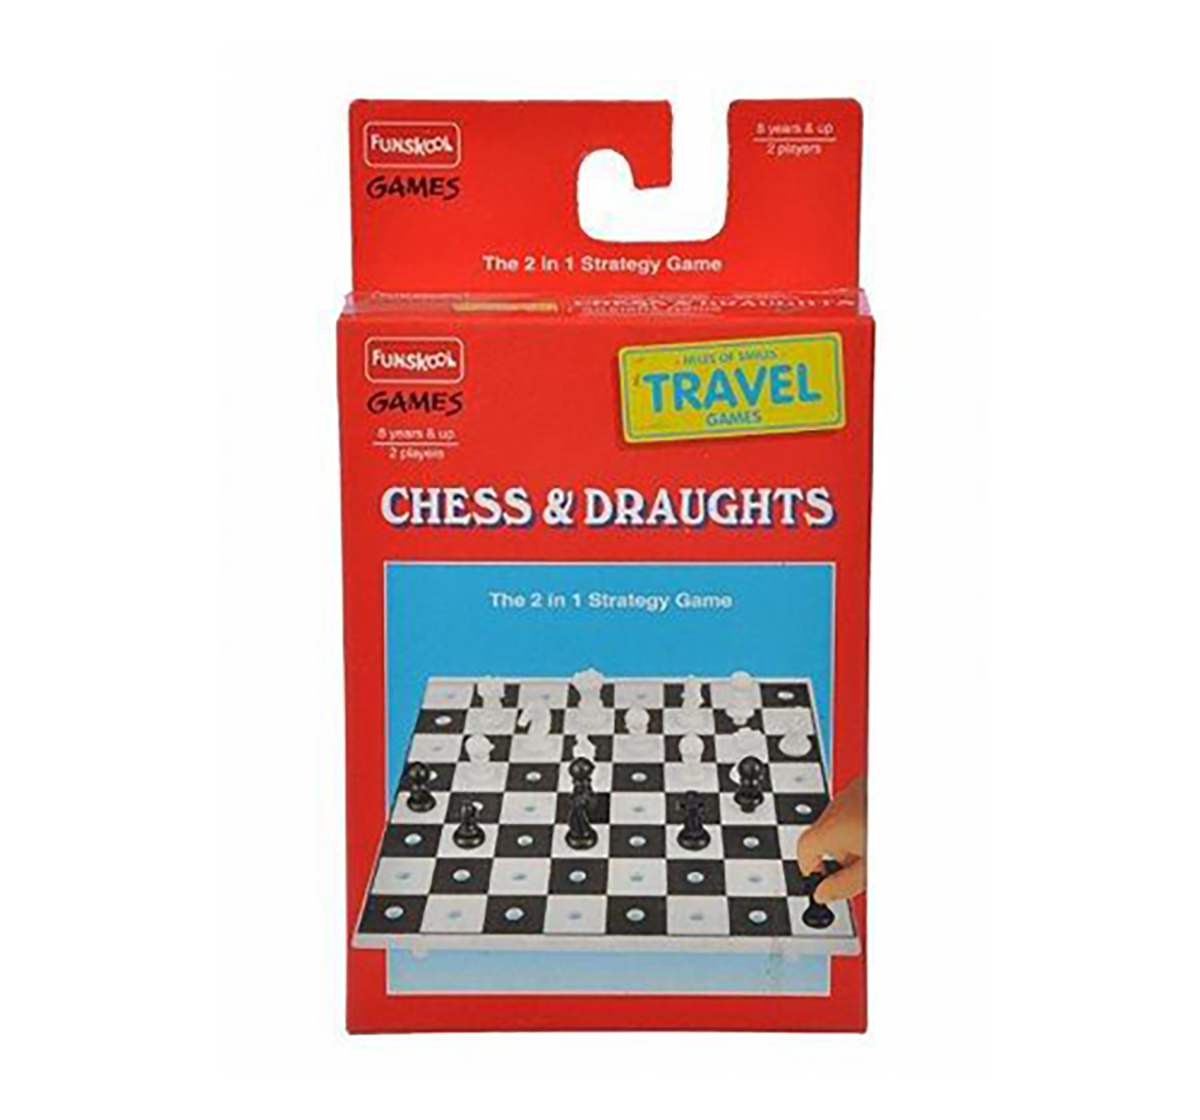 Funskool | Funskool Travel Chess & Draught Board Games for Kids age 8Y+